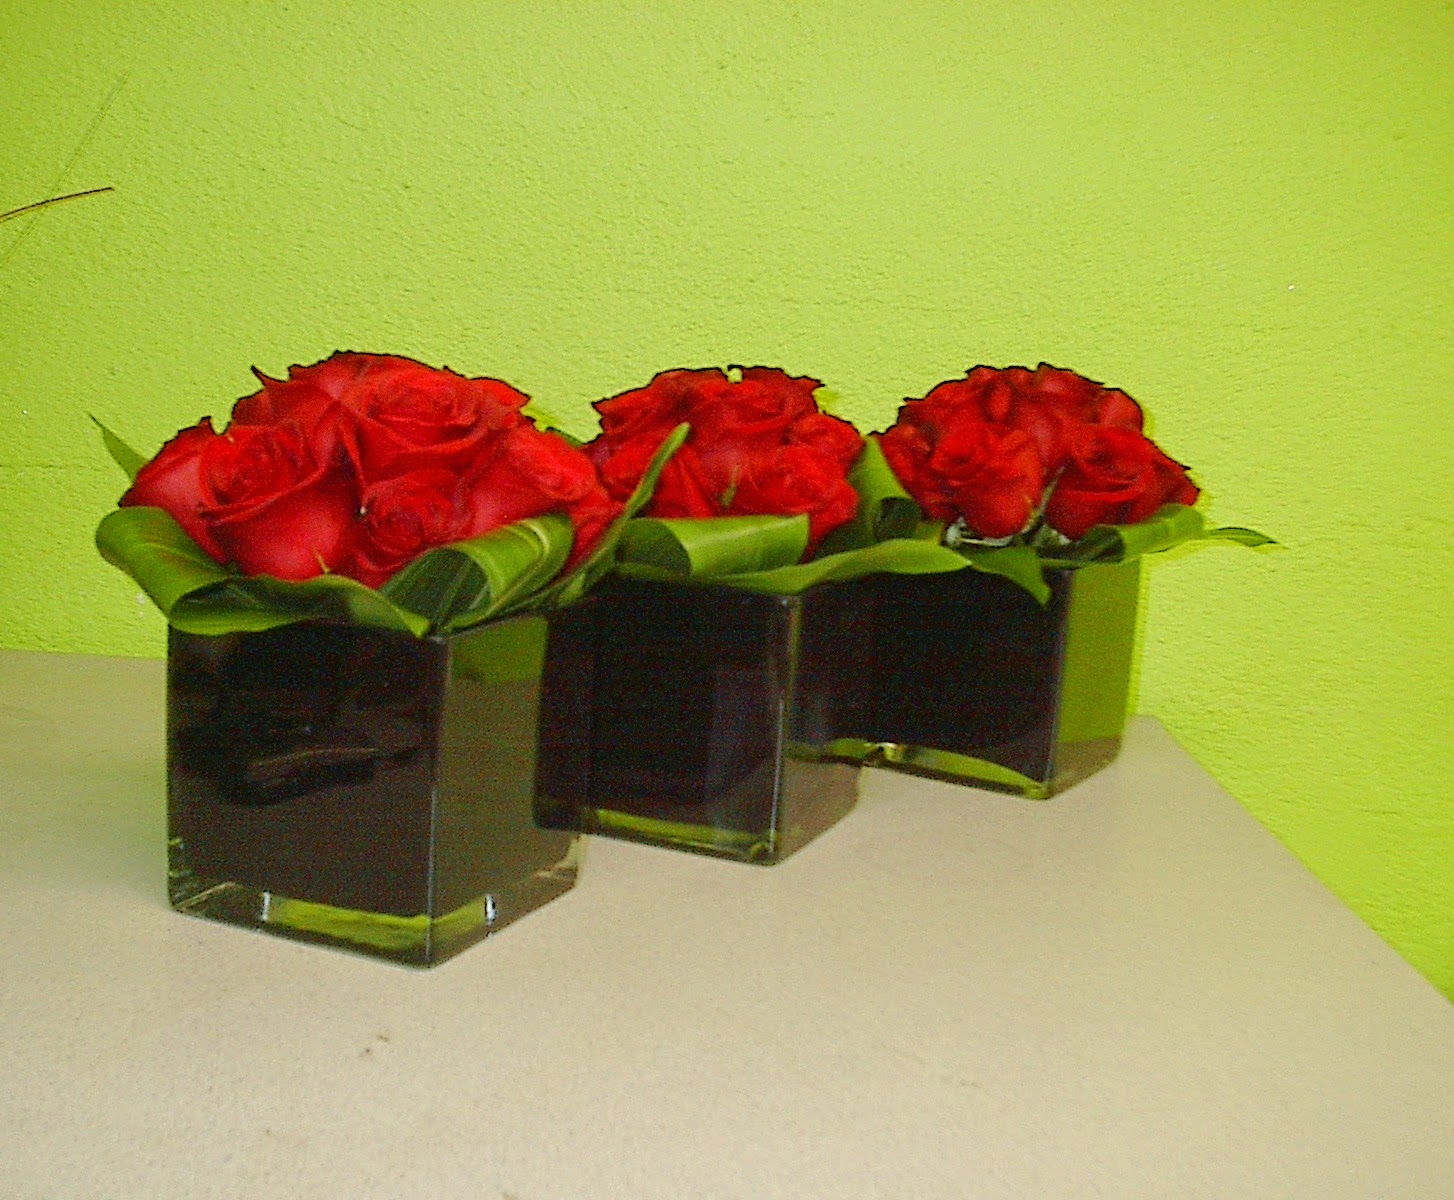 Flowers for one of our favorite venues cut las vegas wolfgang flowers for cut las vegas wolfgang puck steakhouse inside the palazzo of red roses aspidistra leaves in a black modern cube vase in a set of three reviewsmspy